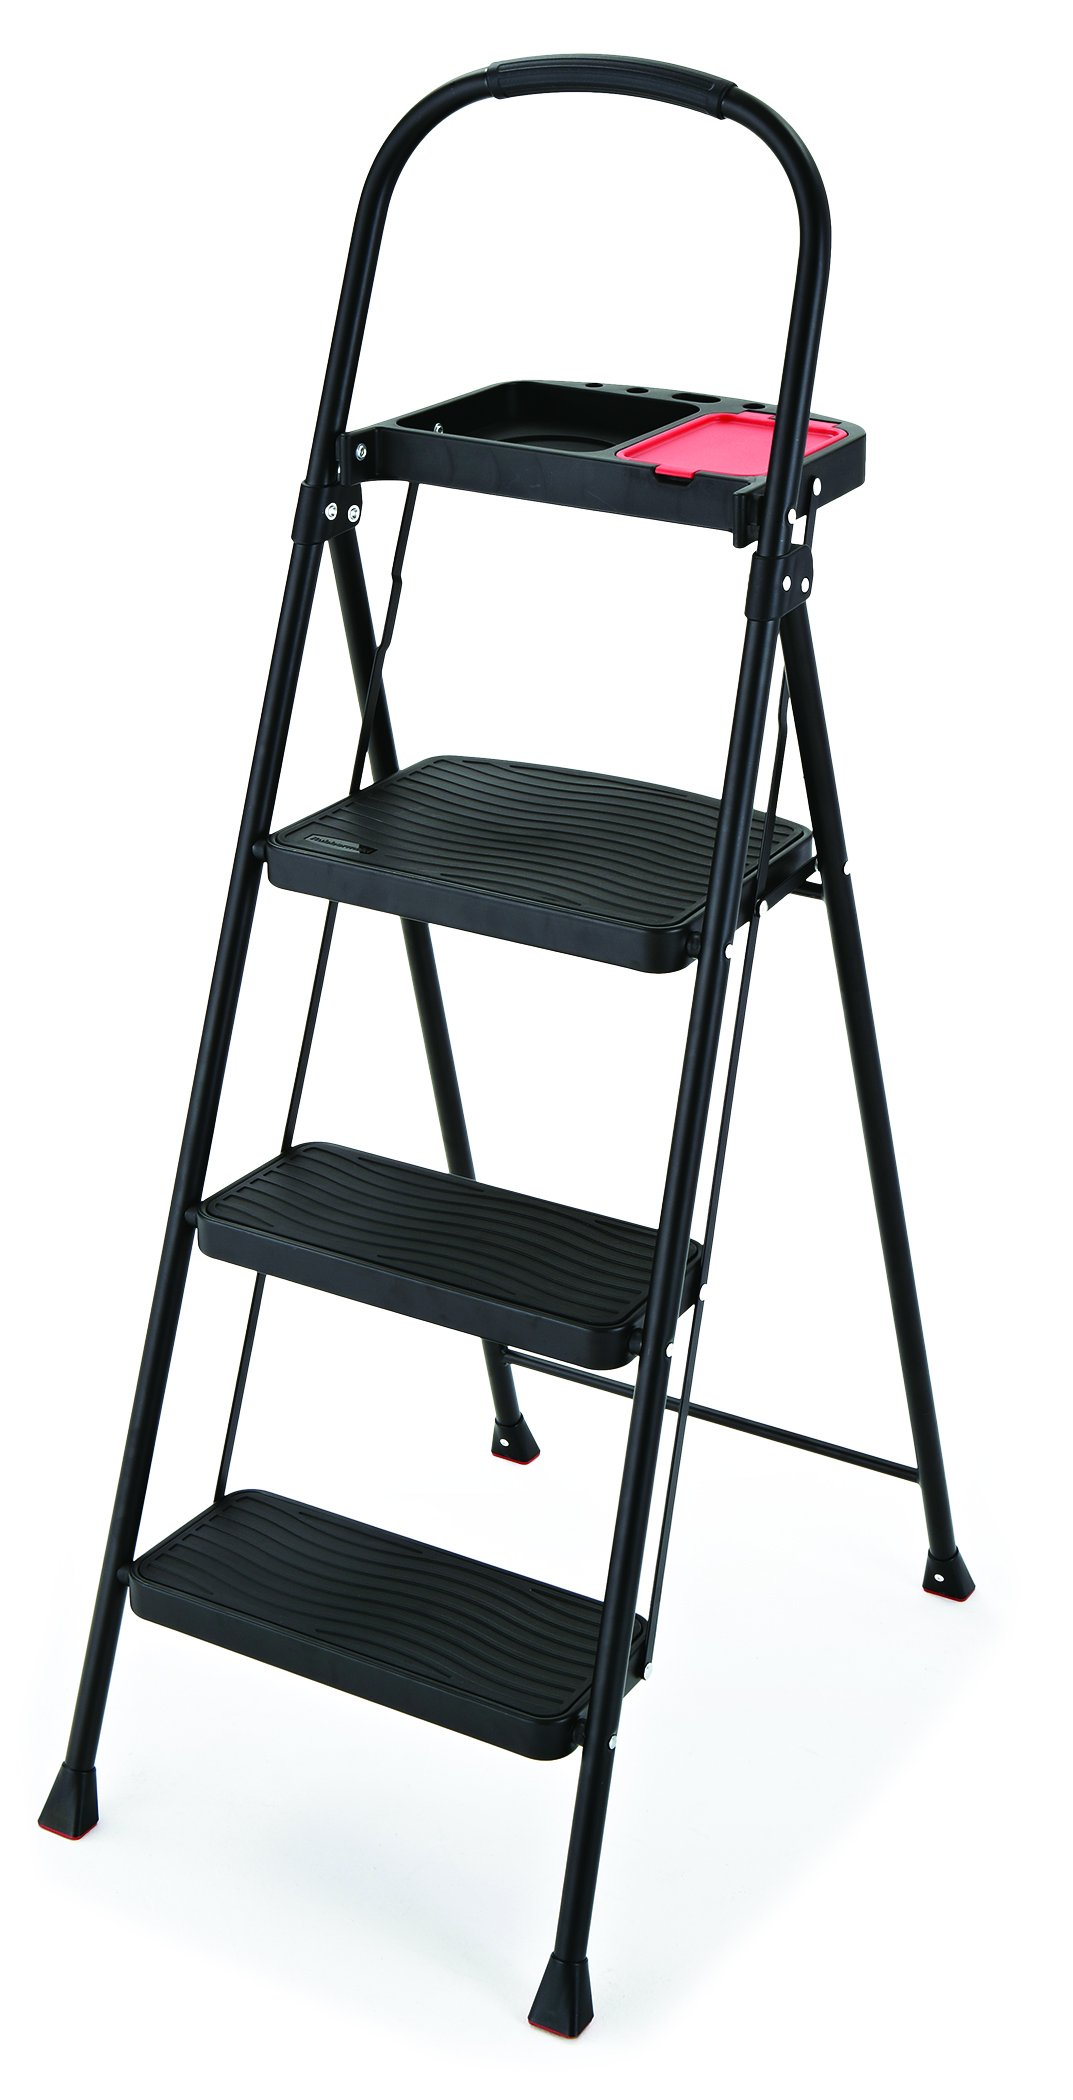 Rubbermaid RMS-3T 3-Step Steel Step Stool with Project Tray, 225-pound Capacity by Rubbermaid